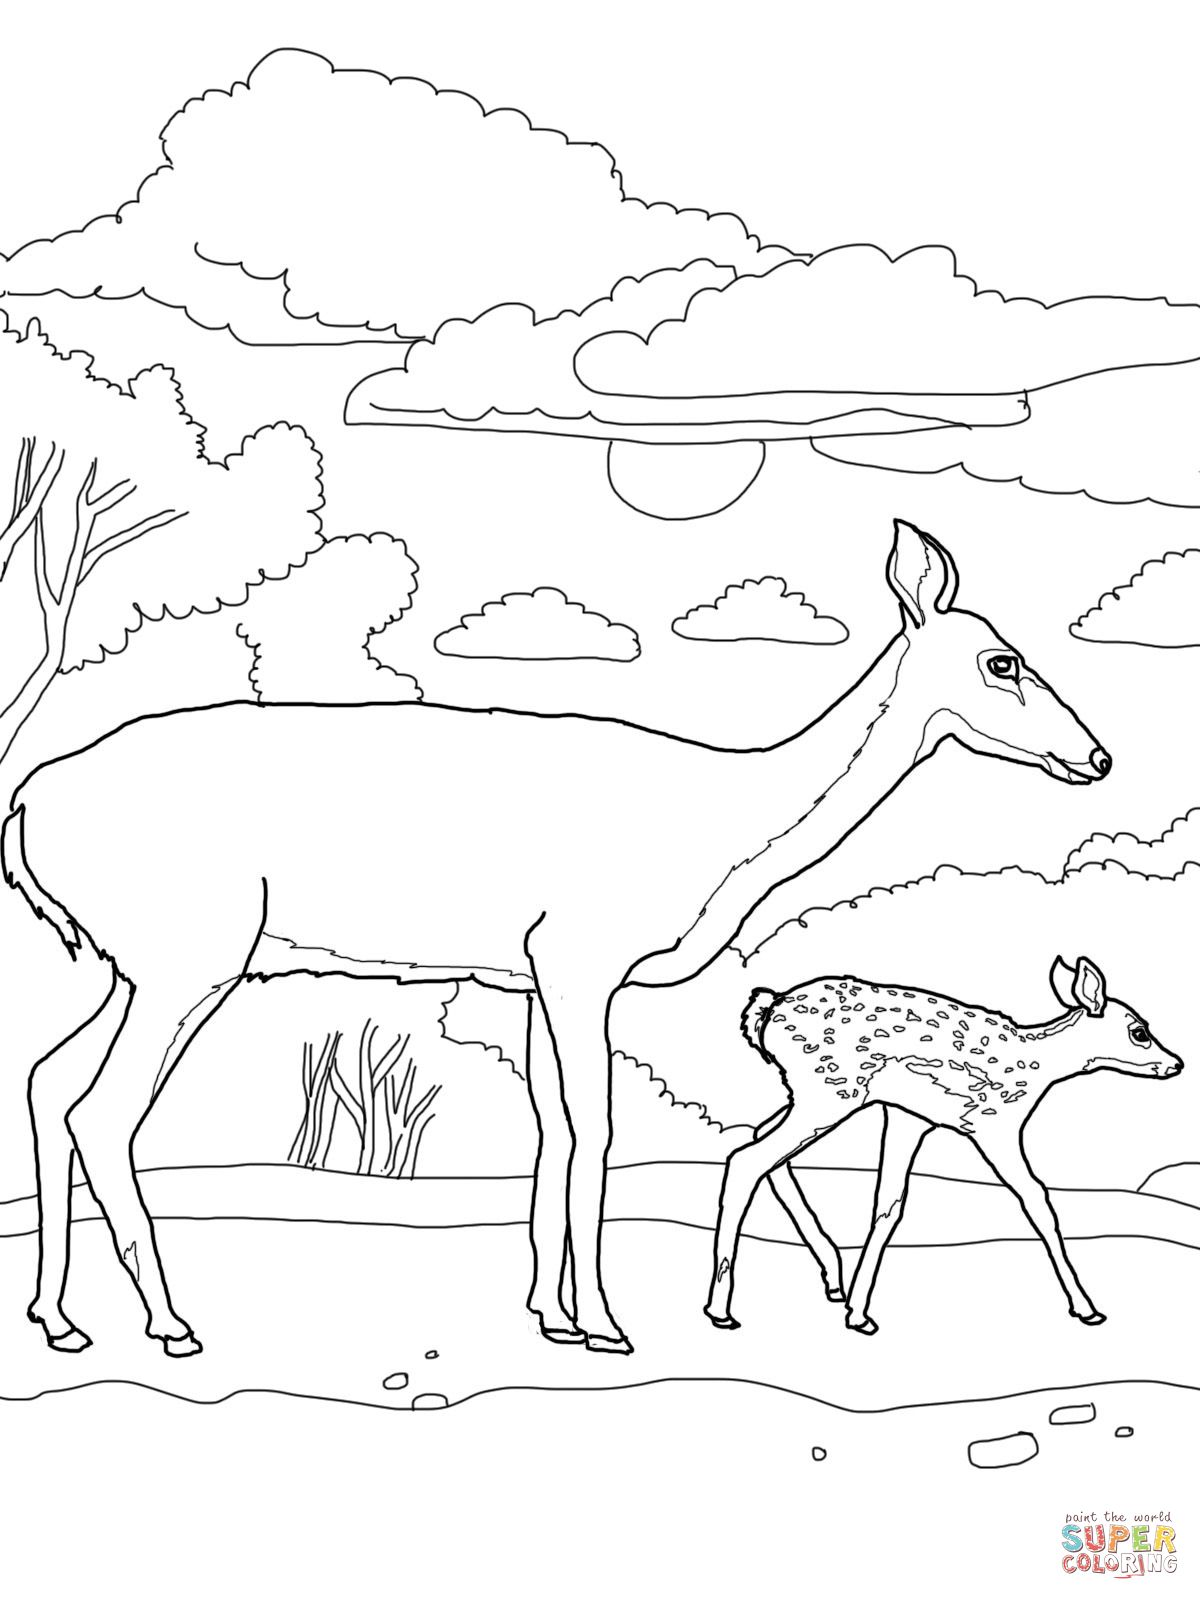 Horse Coloring Pages Supercoloring Com Trend